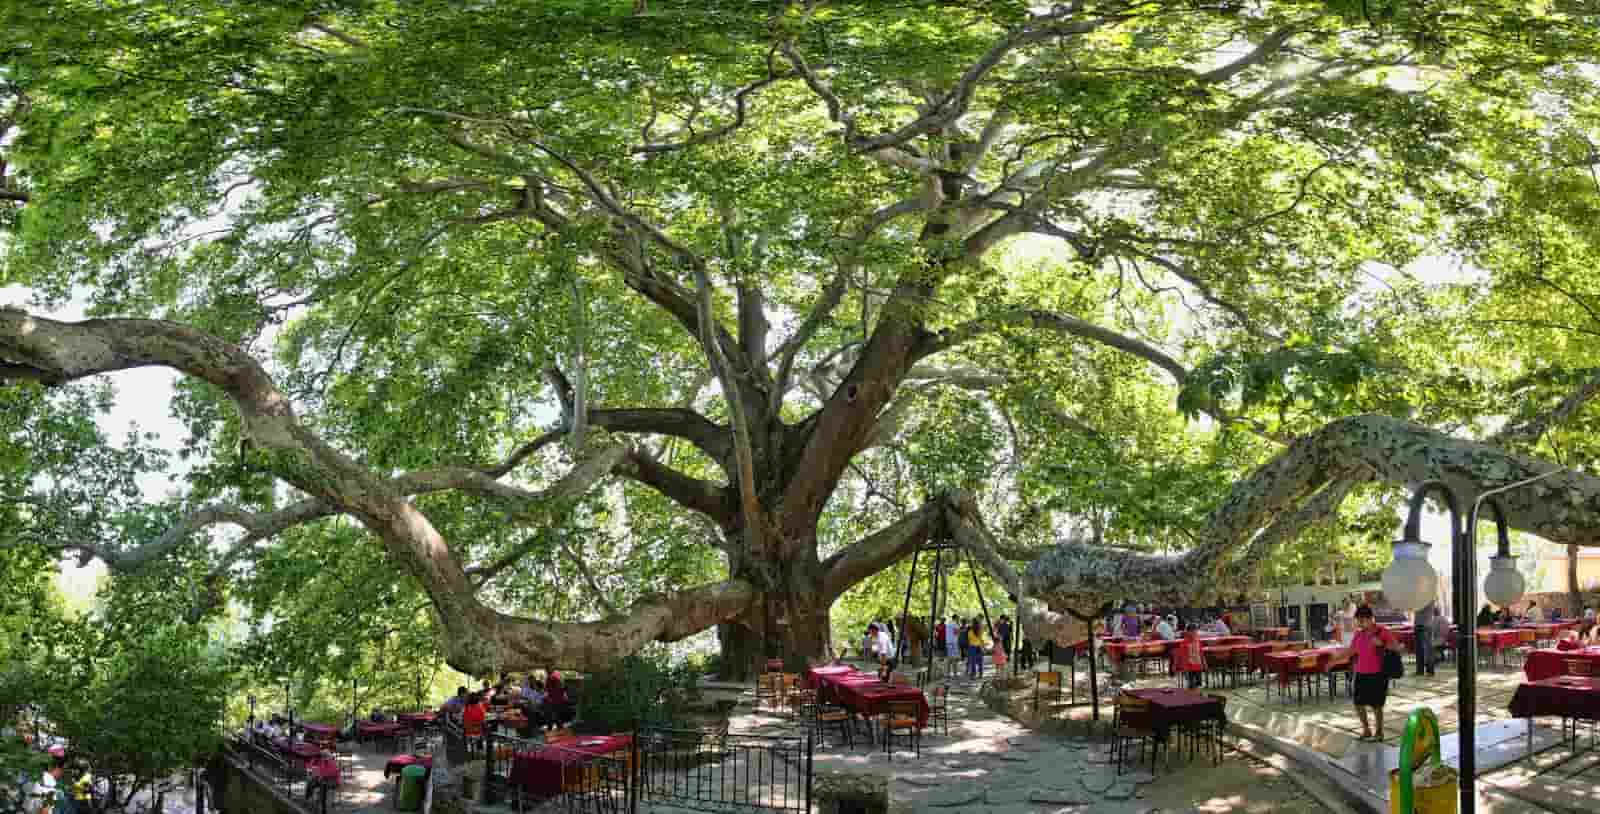 600 years old Plane Tree